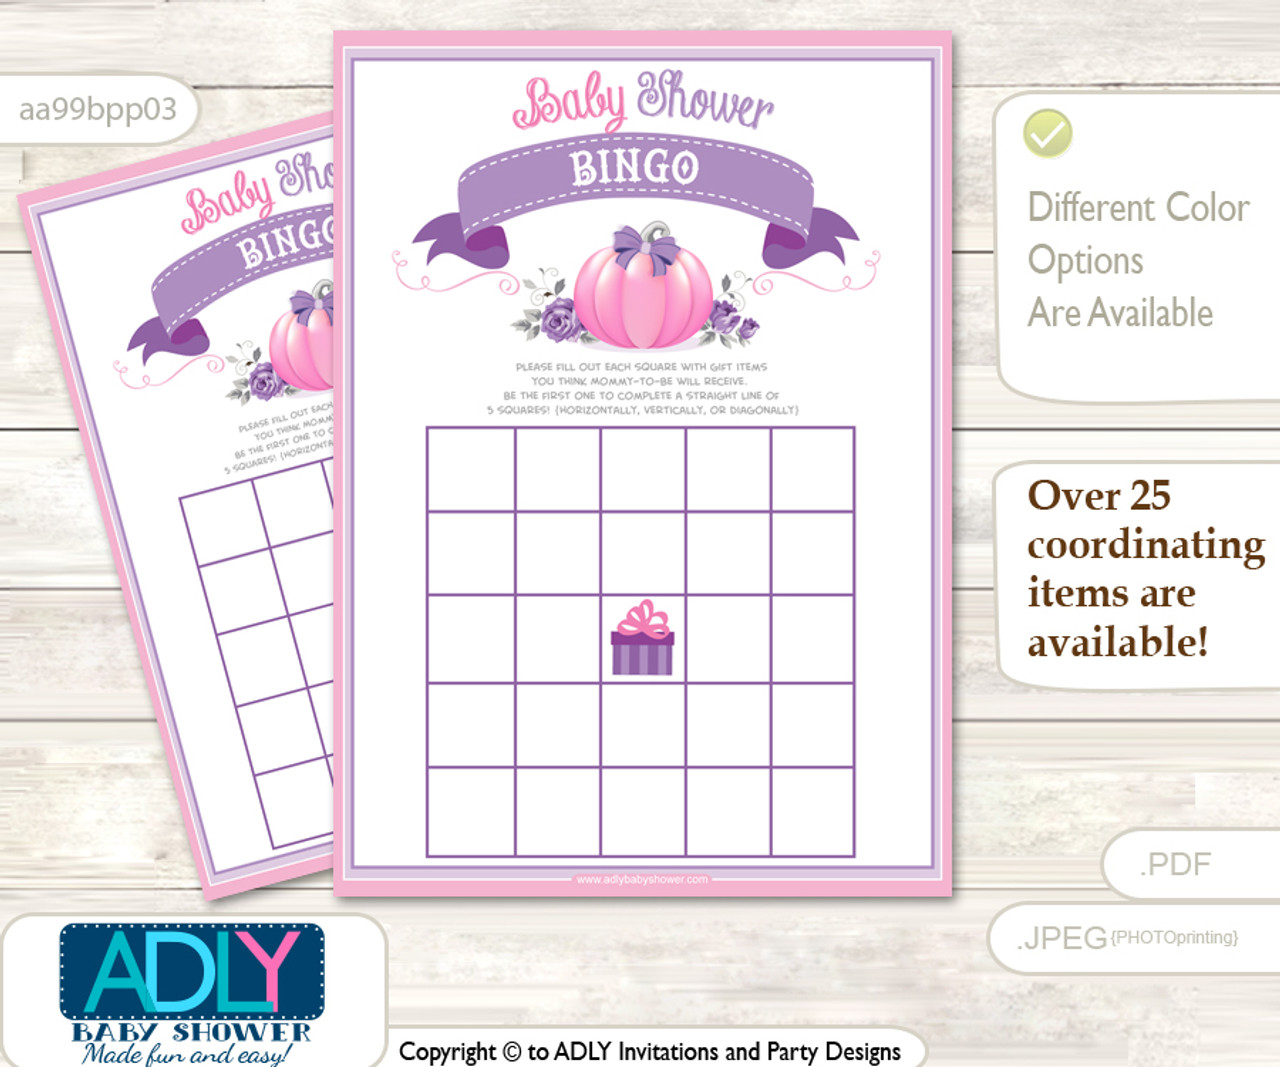 picture regarding Baby Shower Bingo Cards Printable named Printable Crimson Pumpkin Bingo Video game Printable Card for Youngster Woman Shower Do it yourself gray, Purple, Puprle